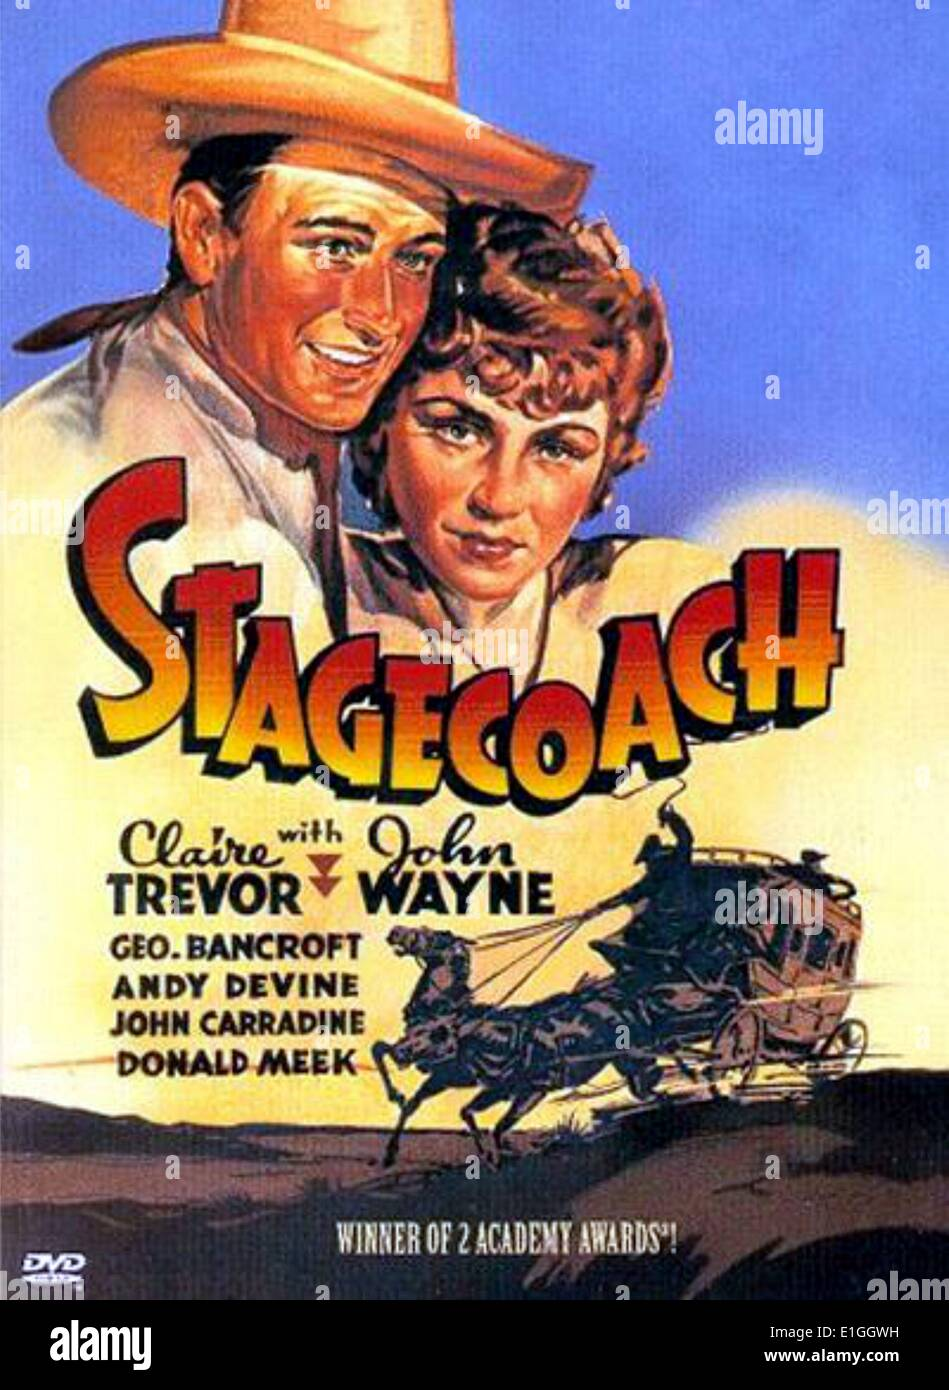 'Stagecoach', a 1939 film starring Claire Trevor and John Wayne. - Stock Image